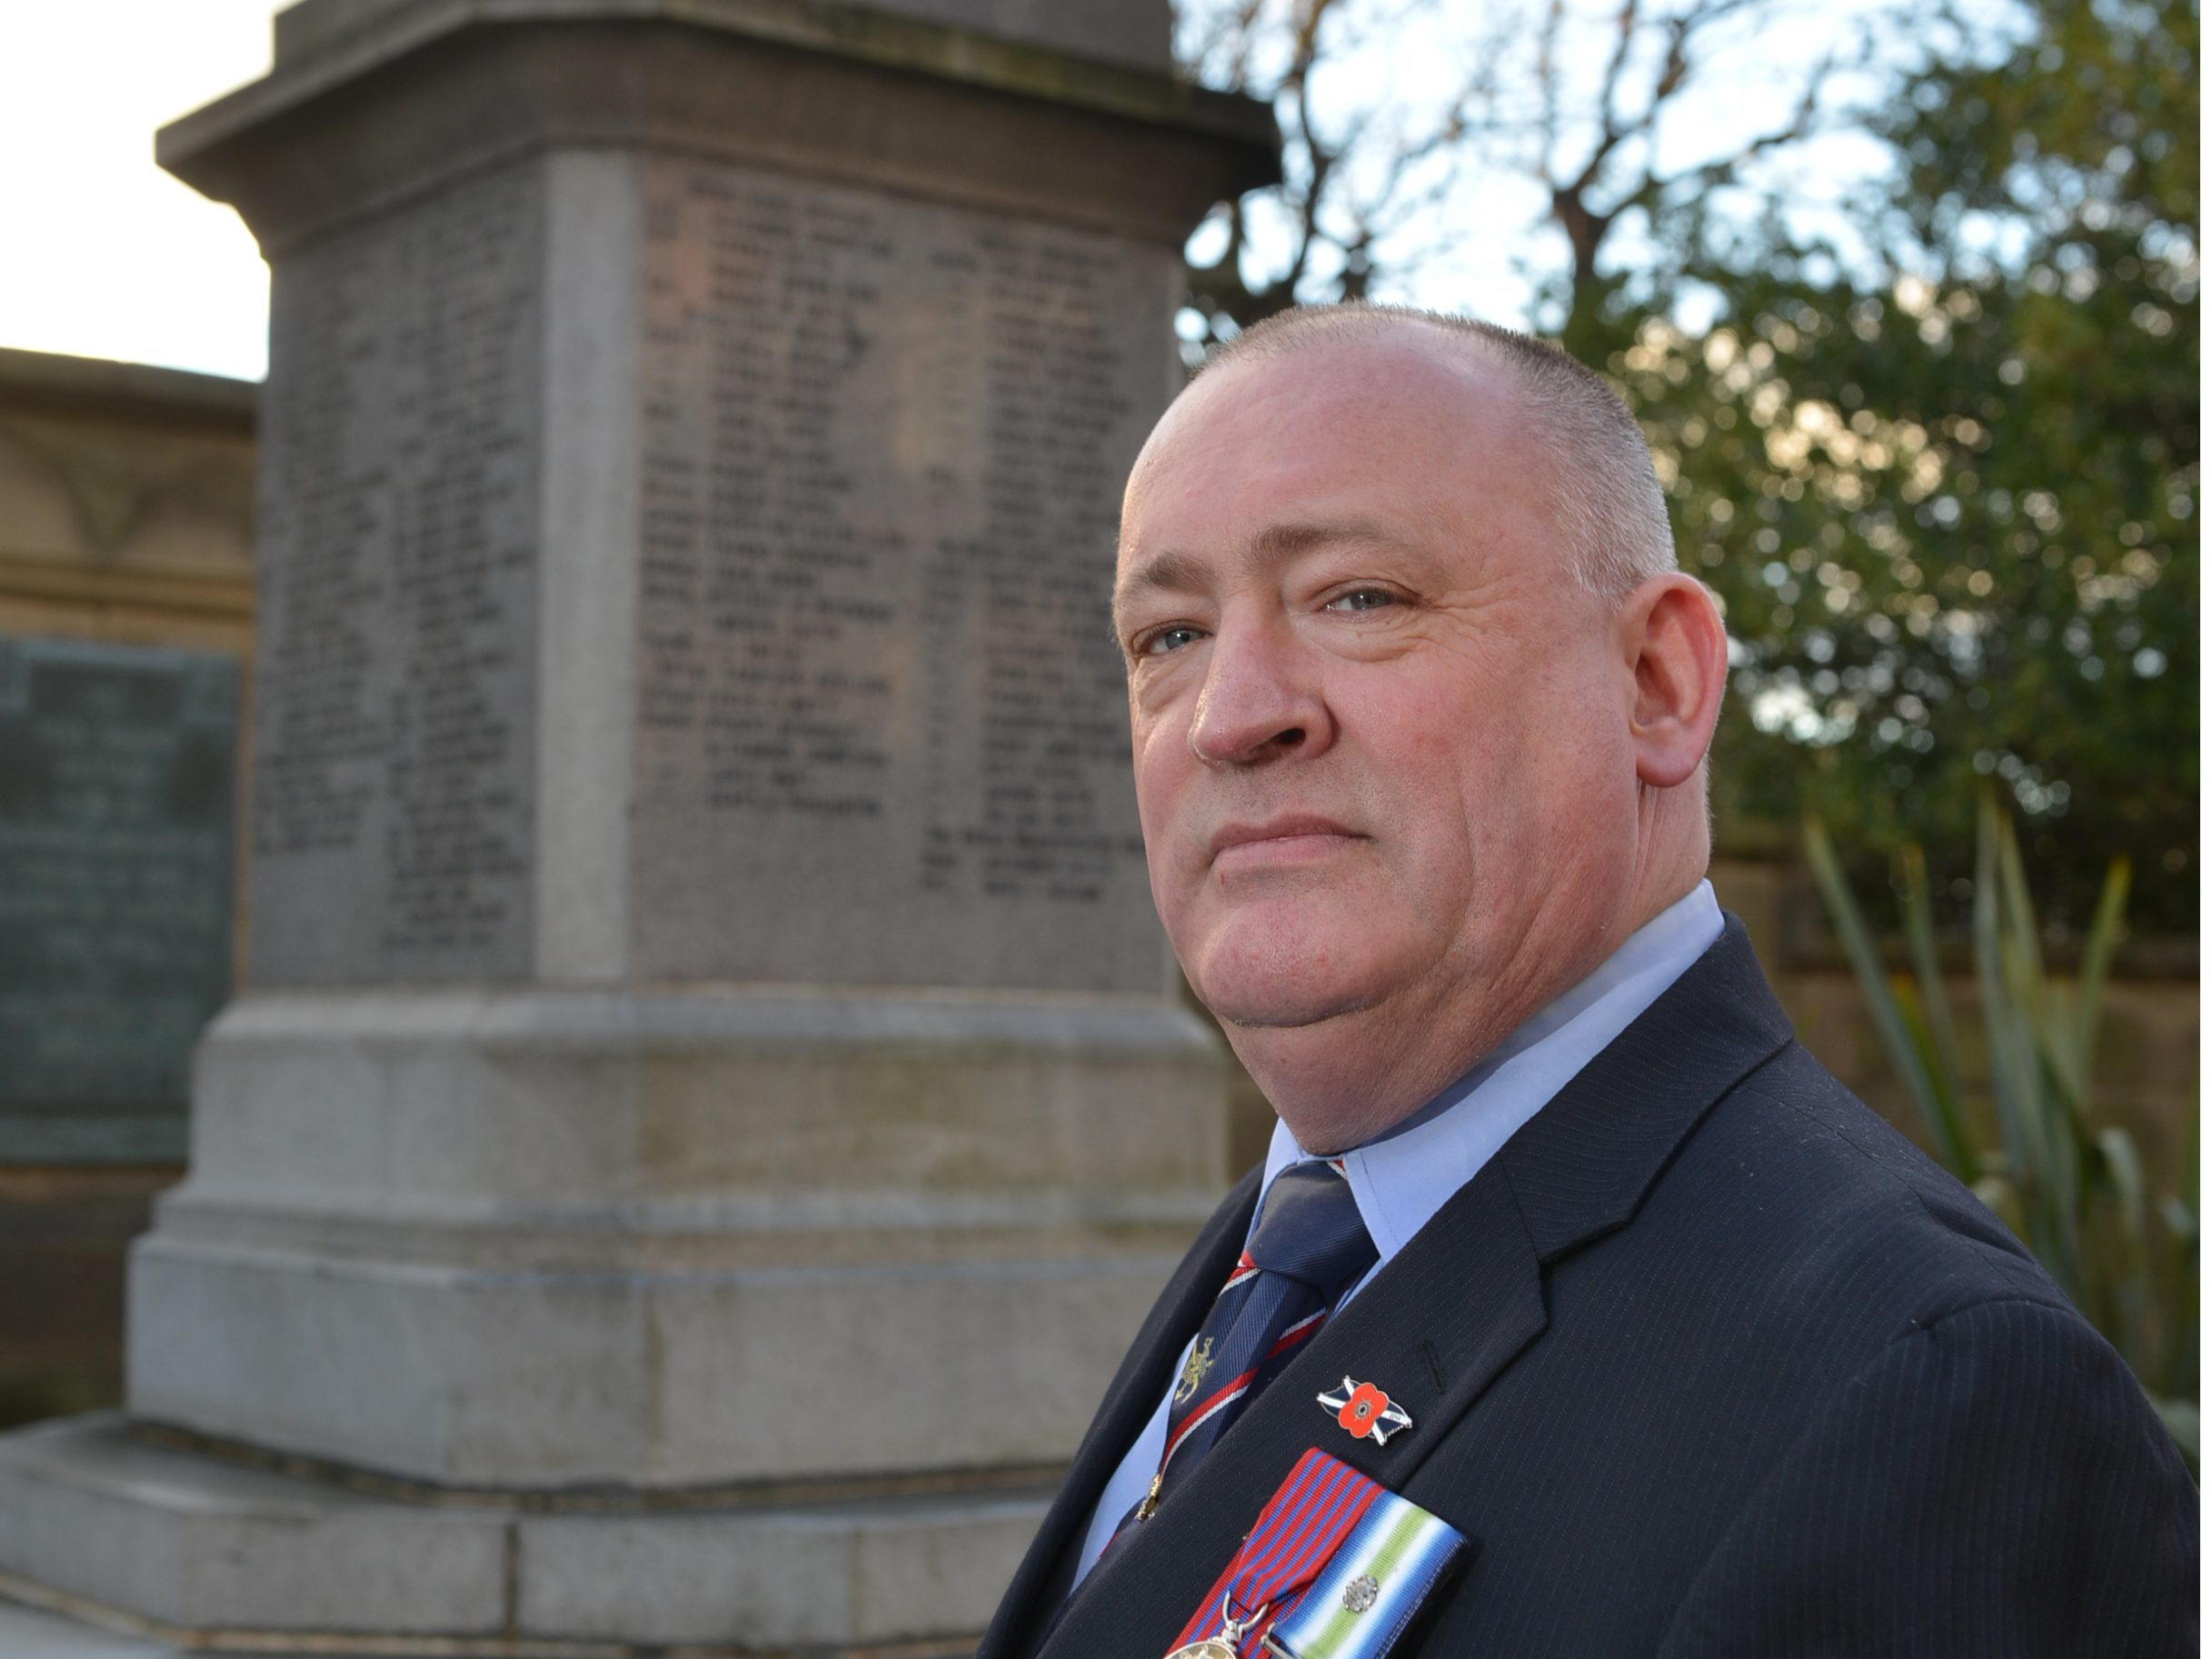 Cllr Charles Haffey, Fife's armed forces champion